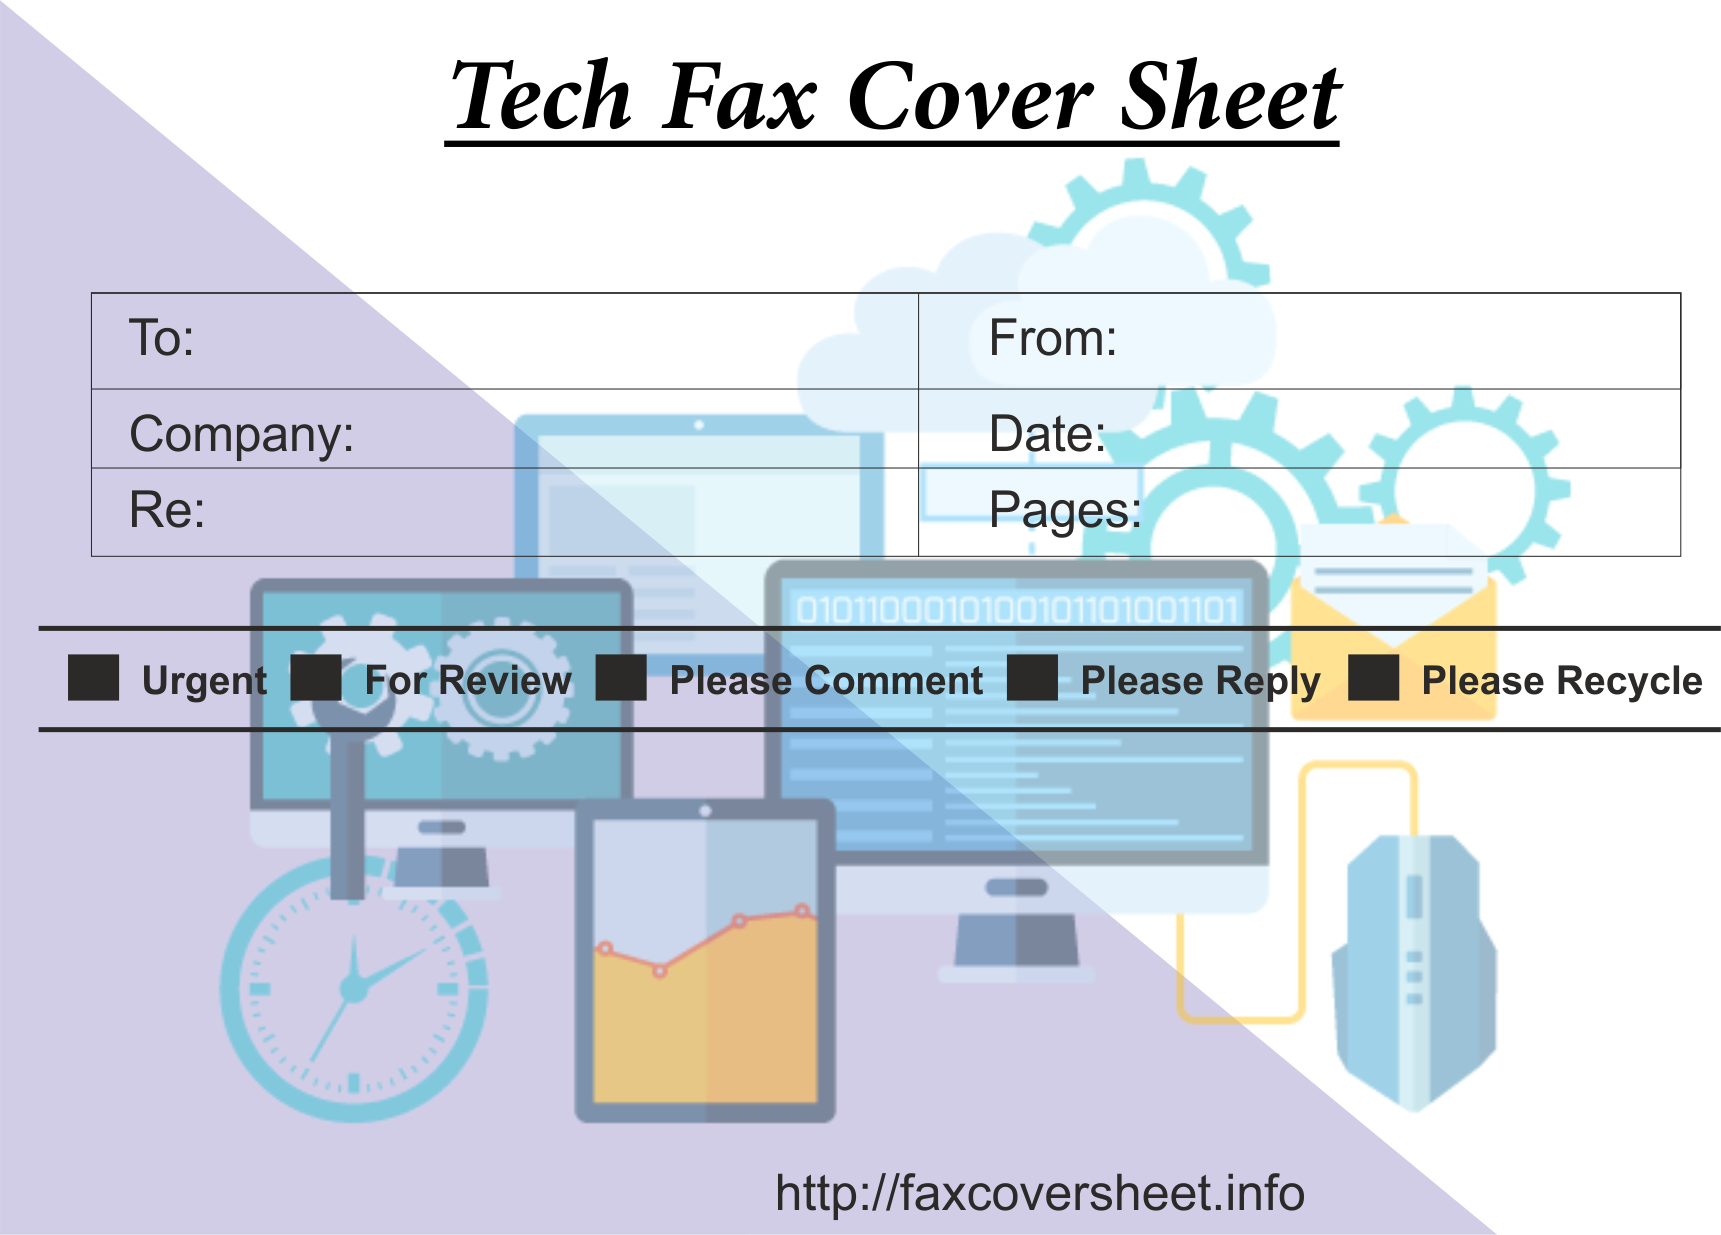 Fax Cover Sheet with Tech Design, sample Fax Cover Sheet with Tech Design